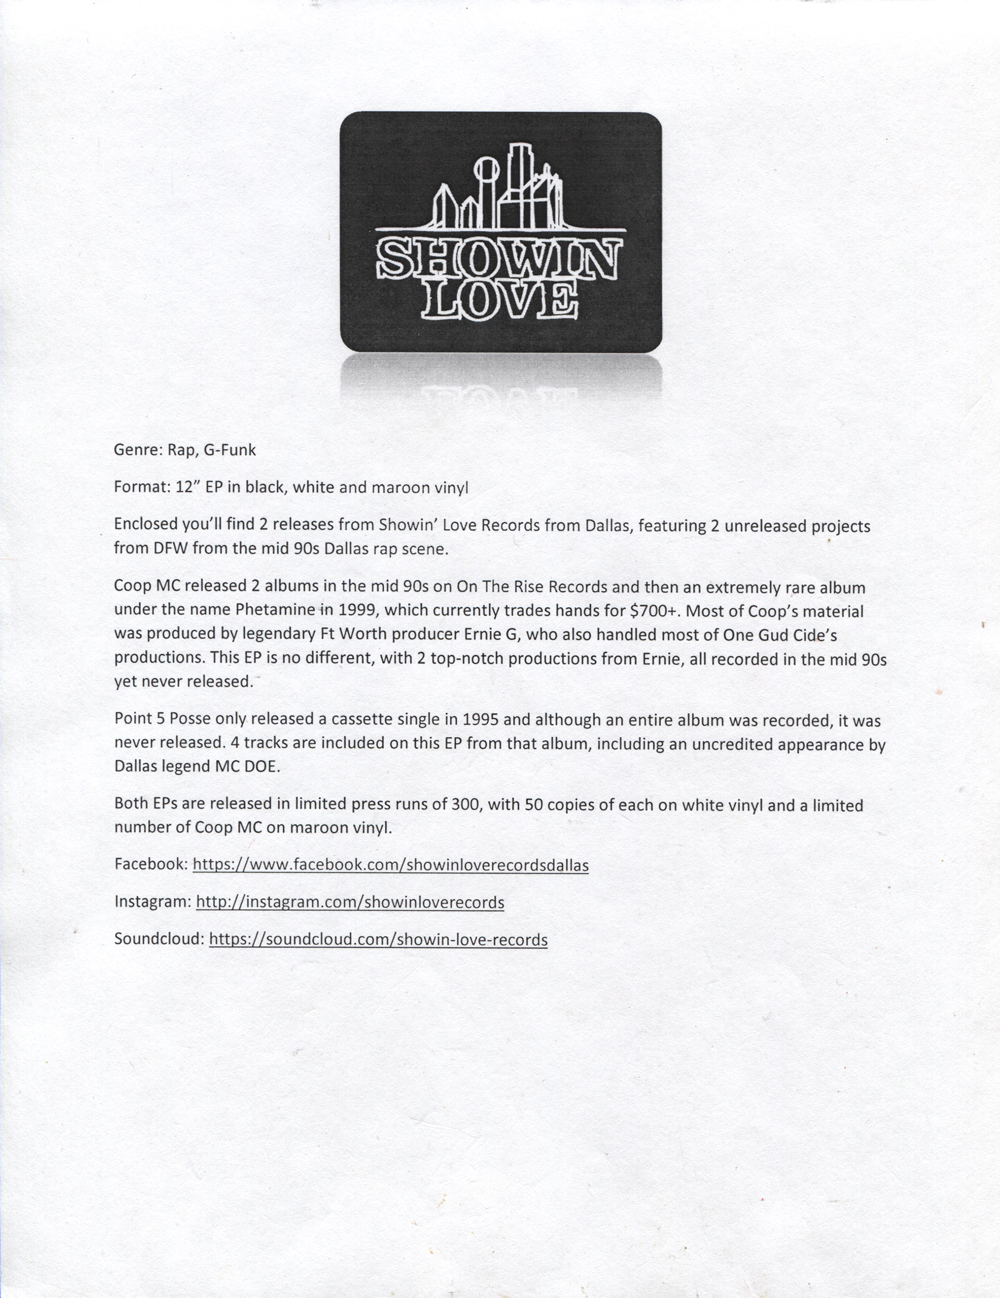 Showin-Love-Records-promo-letter